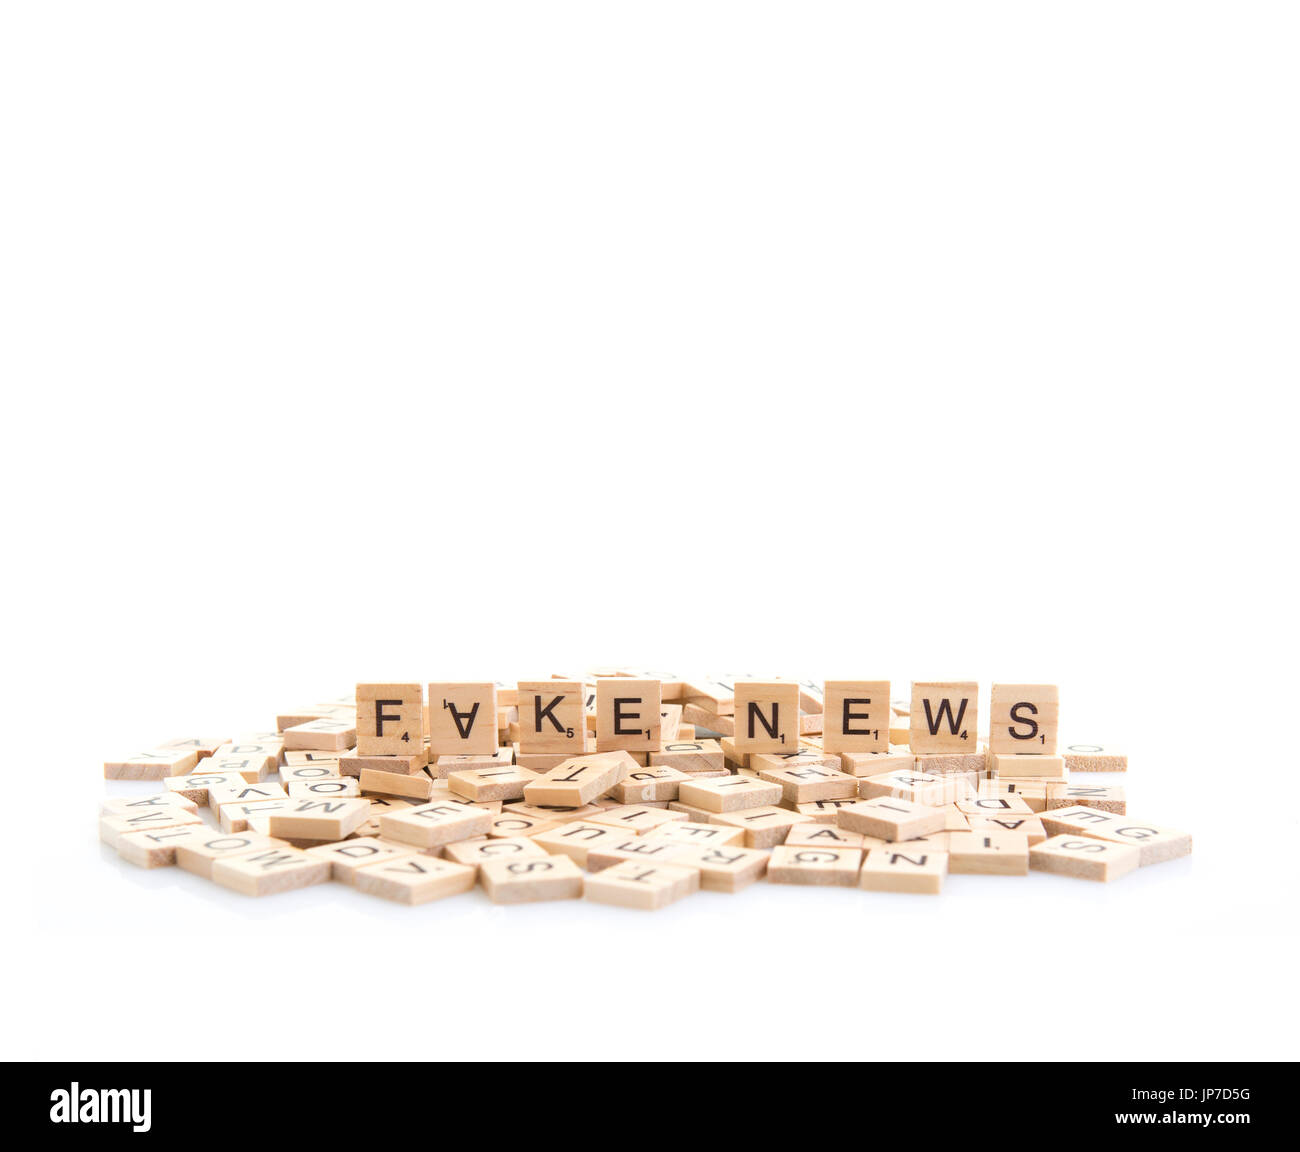 Fake News spelt out on word tiles on a white background. - Stock Image